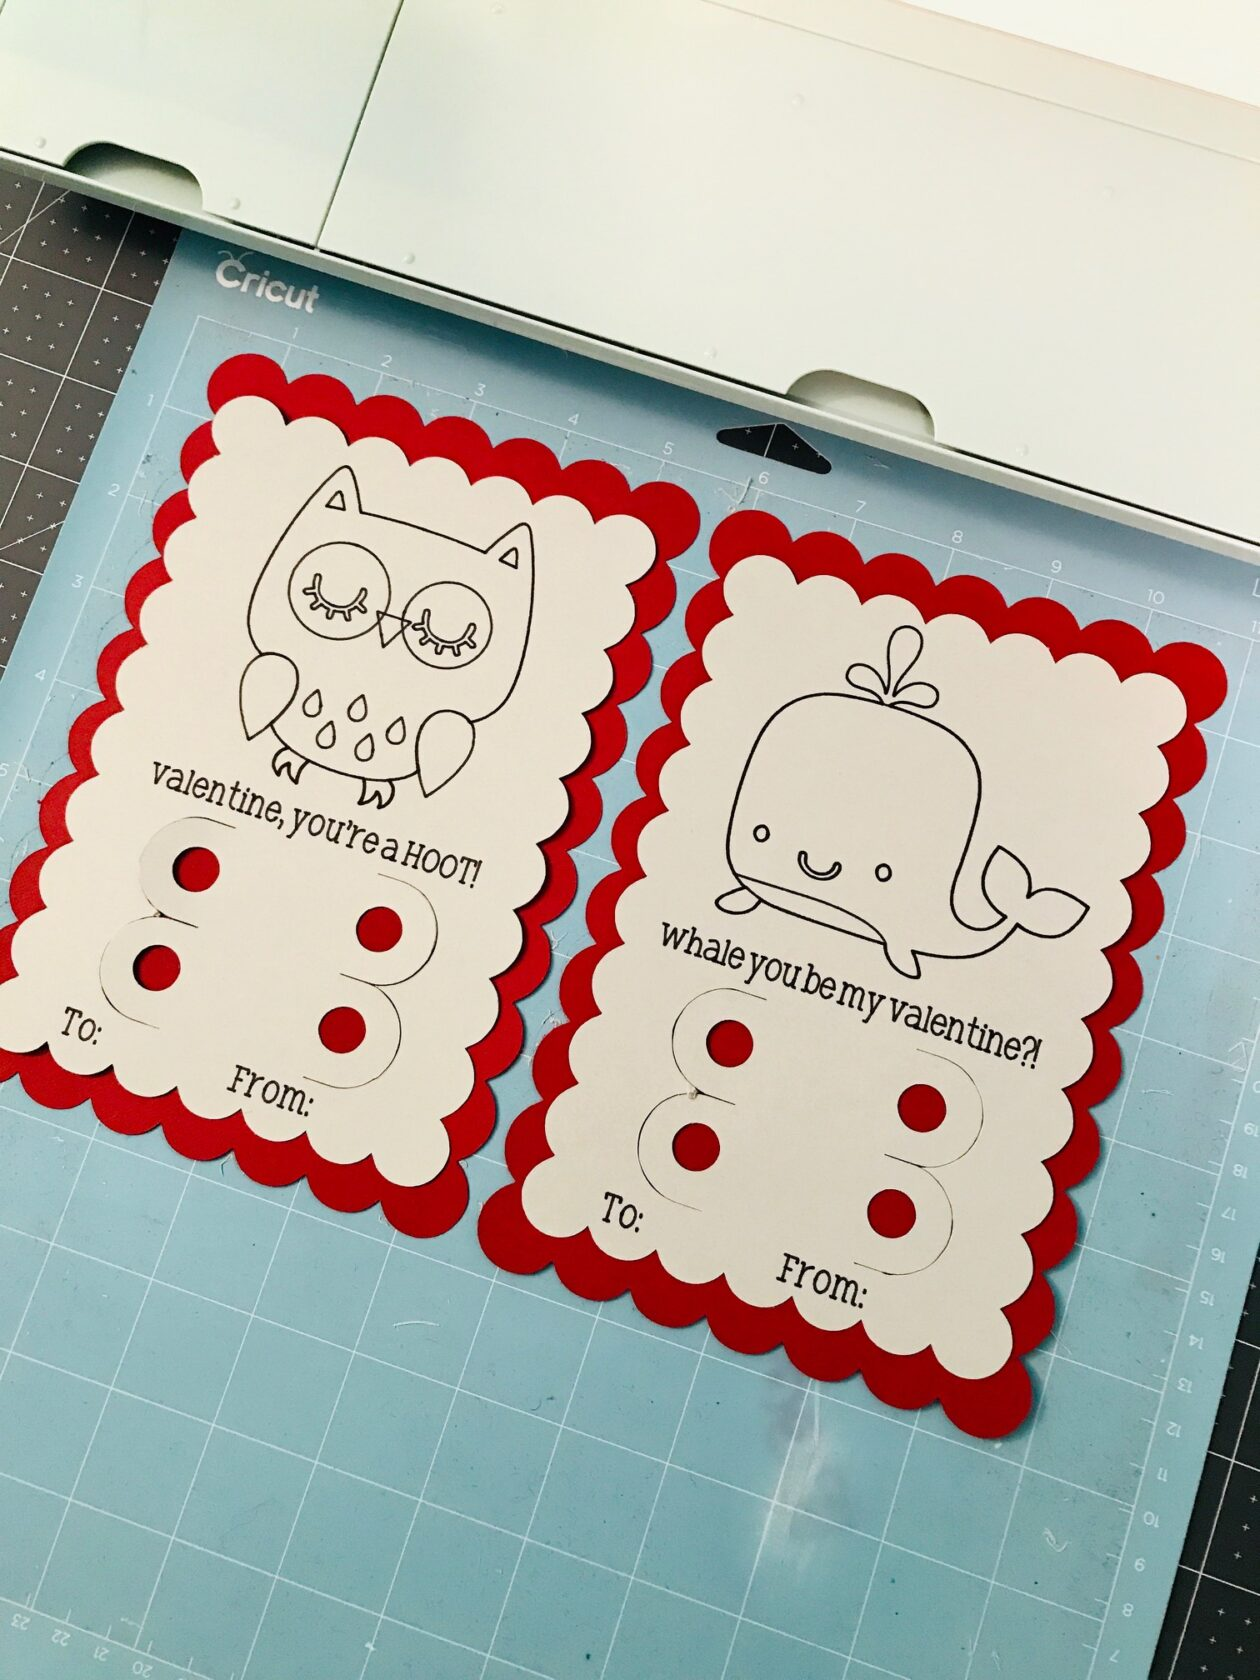 Cricut Valentine's Day Cards For Kids2